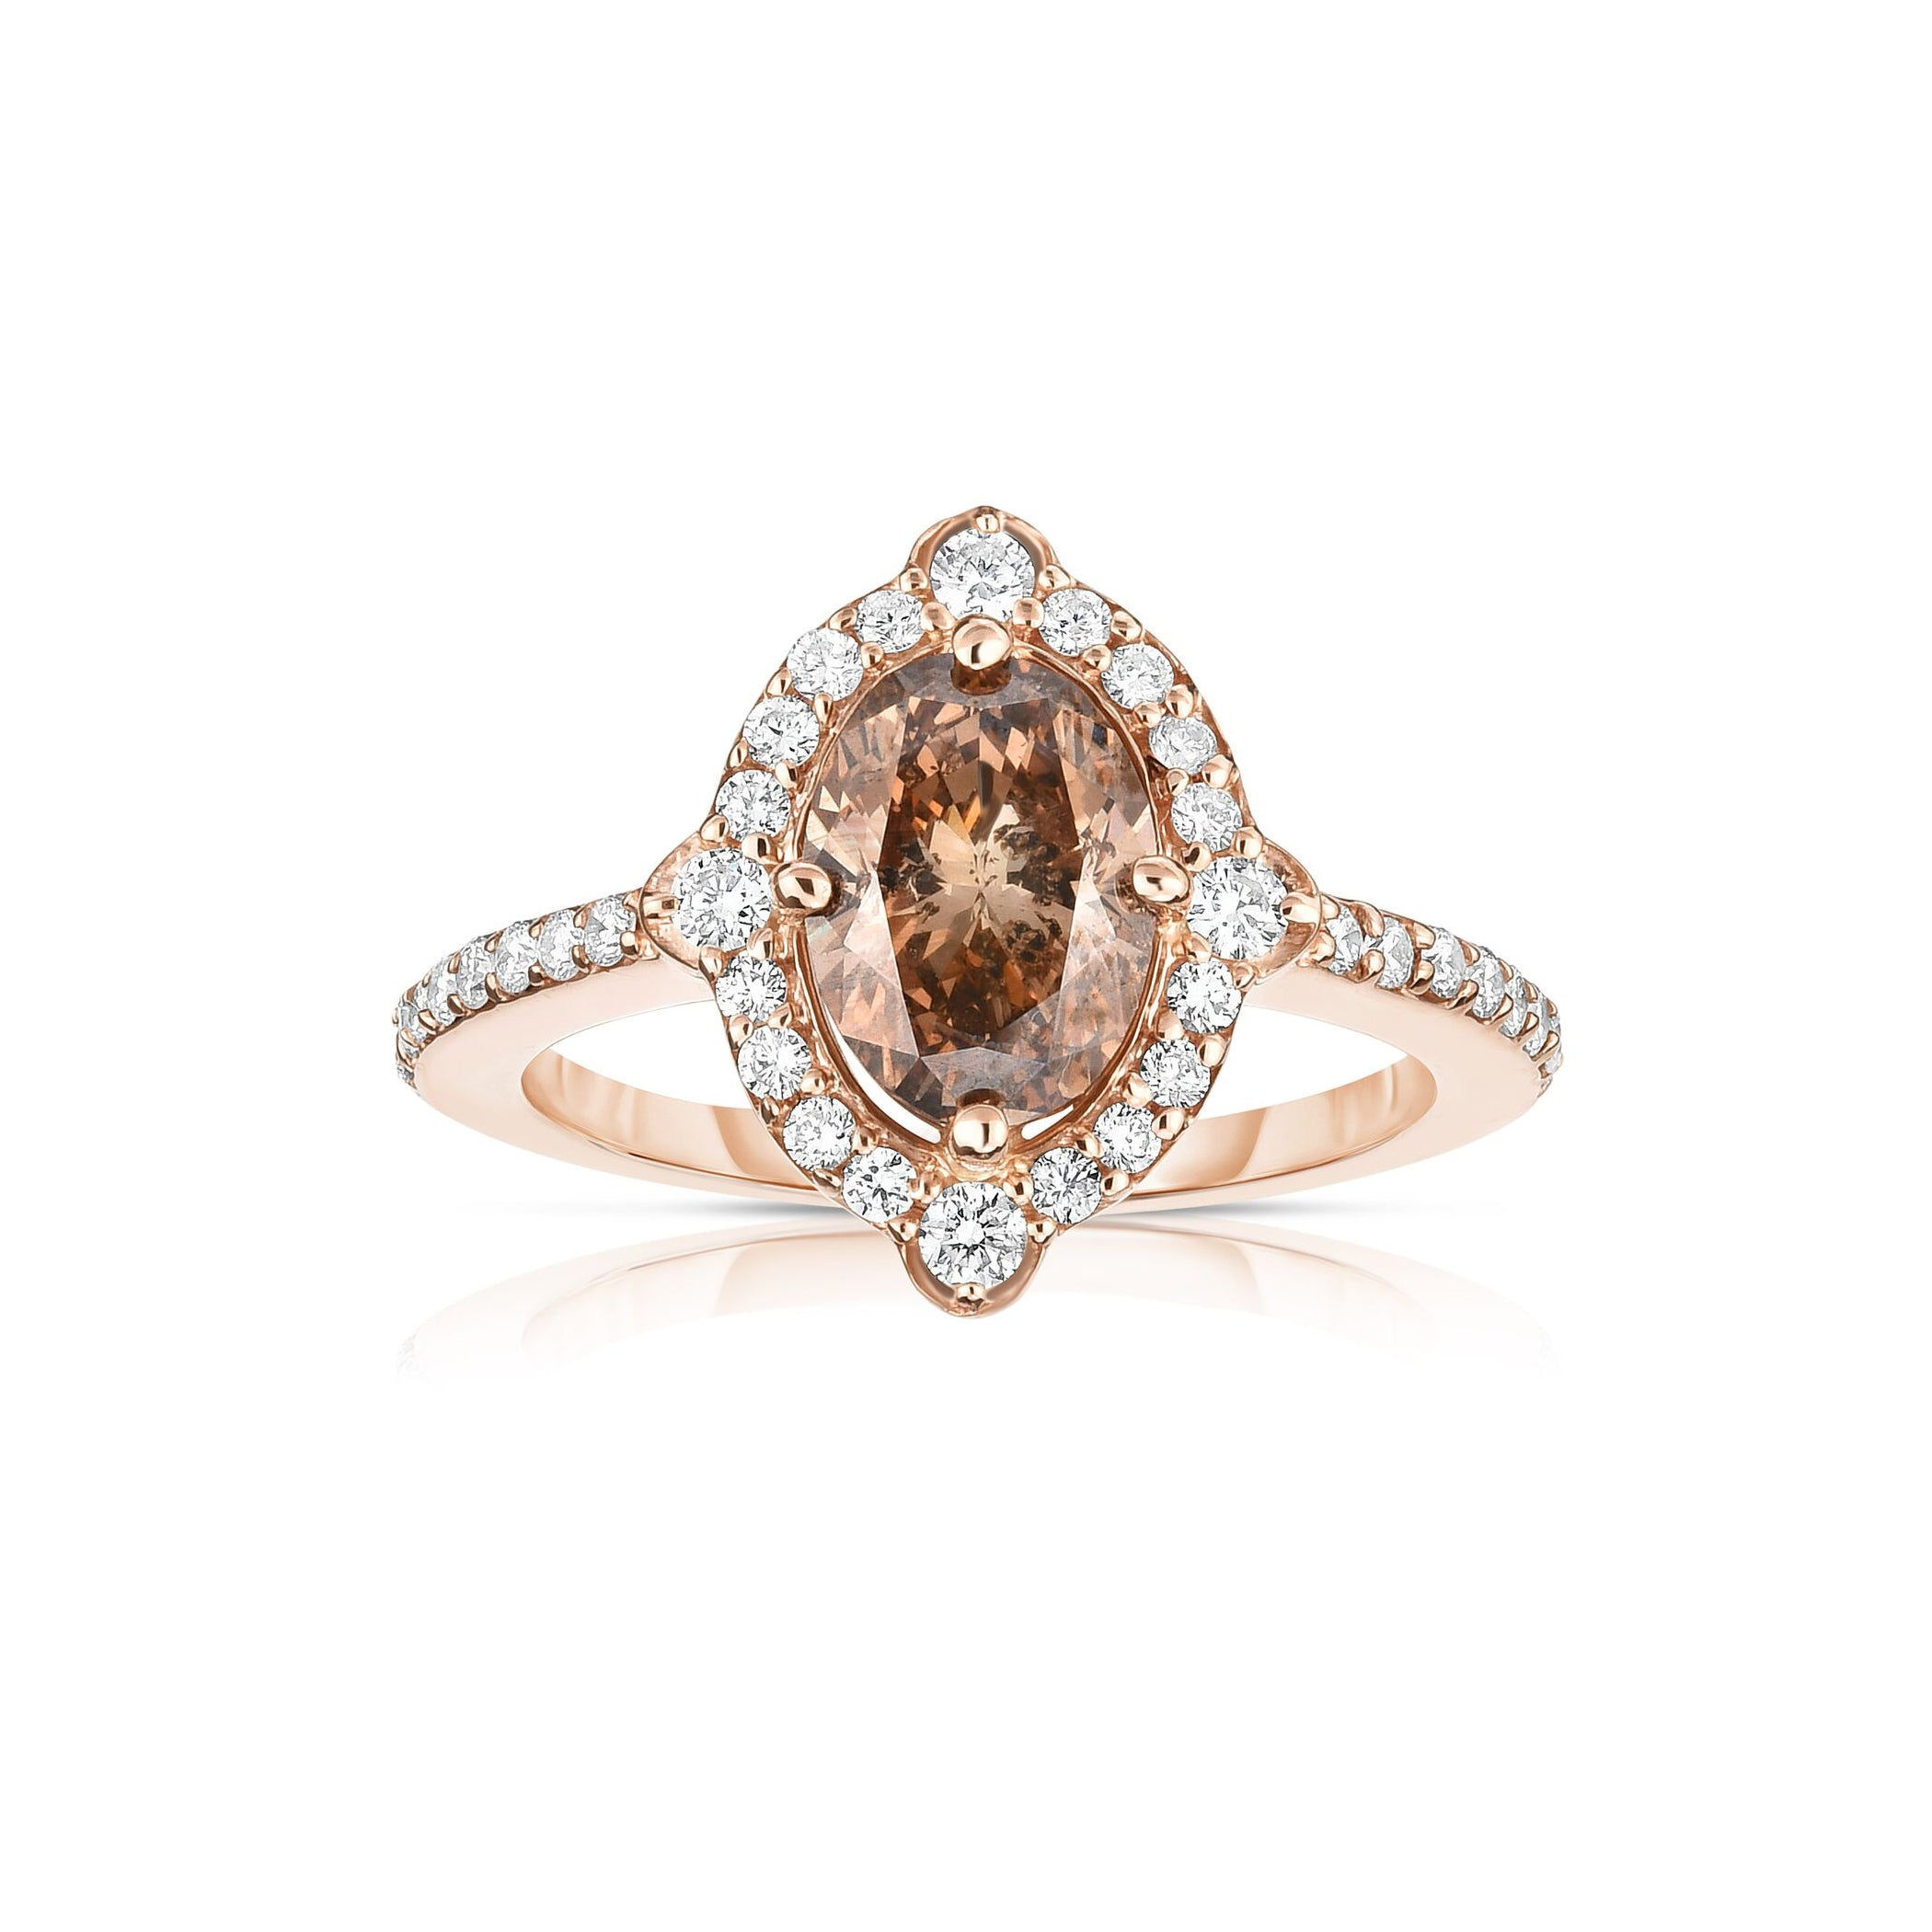 Oval Fancy Brown Diamond Halo Ring, 14K Rose Gold